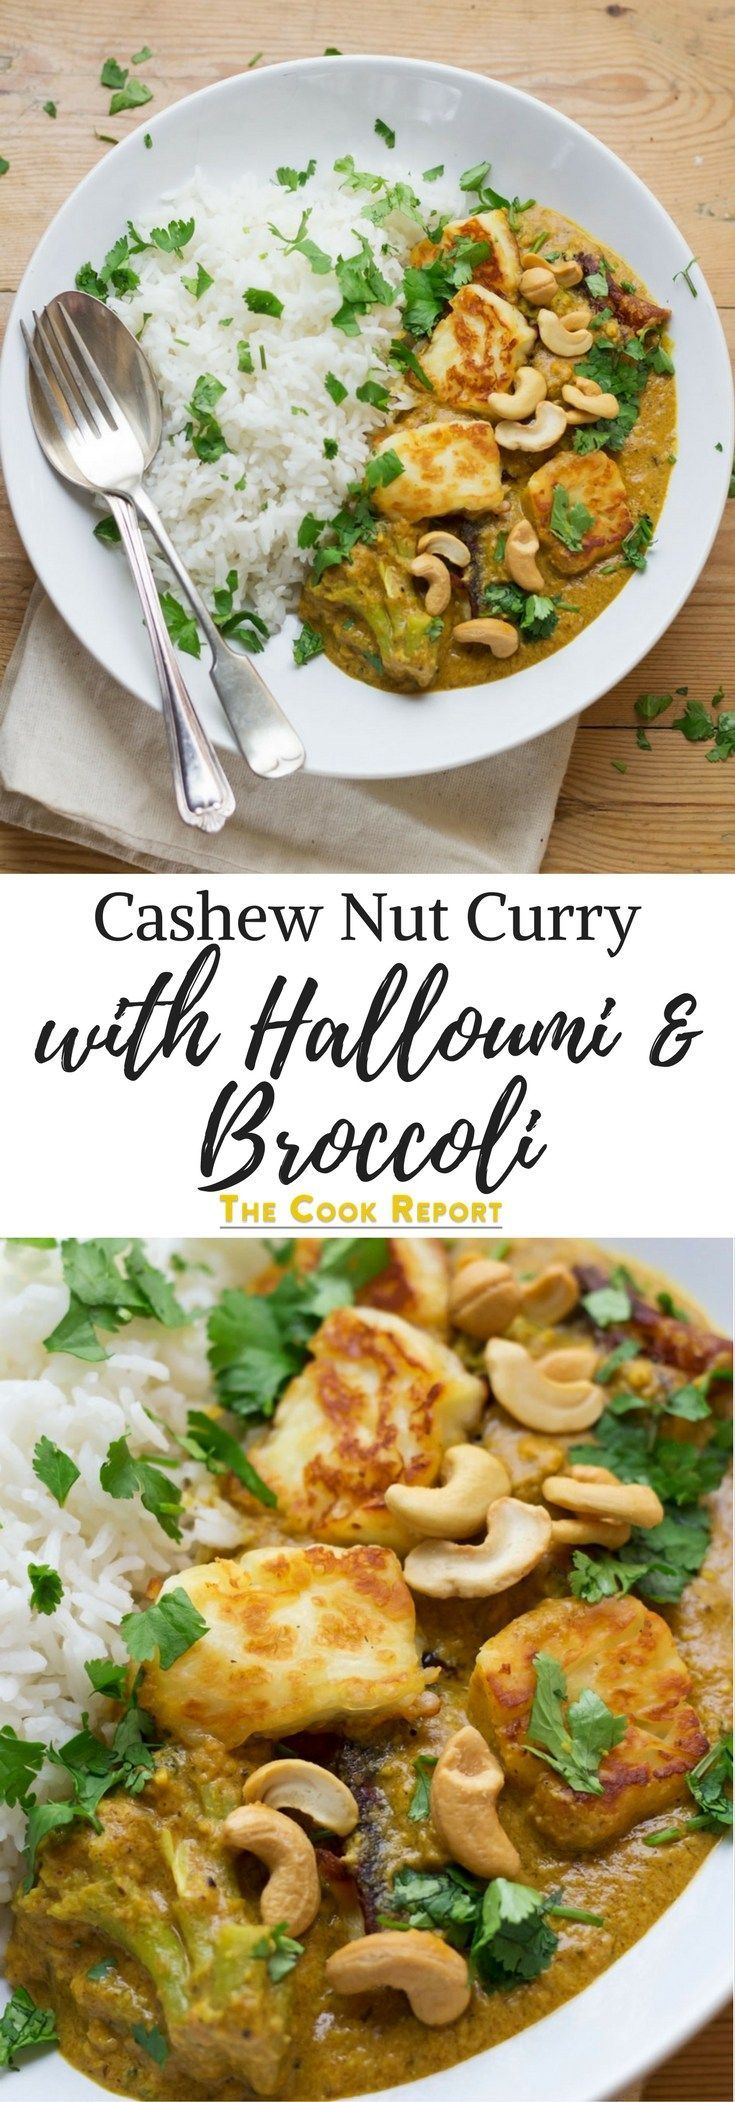 Using halloumi in this creamy cashew nut curry makes a tasty change from a traditional curry. Sprinkle with a handful of whole cashews for an extra crunch.